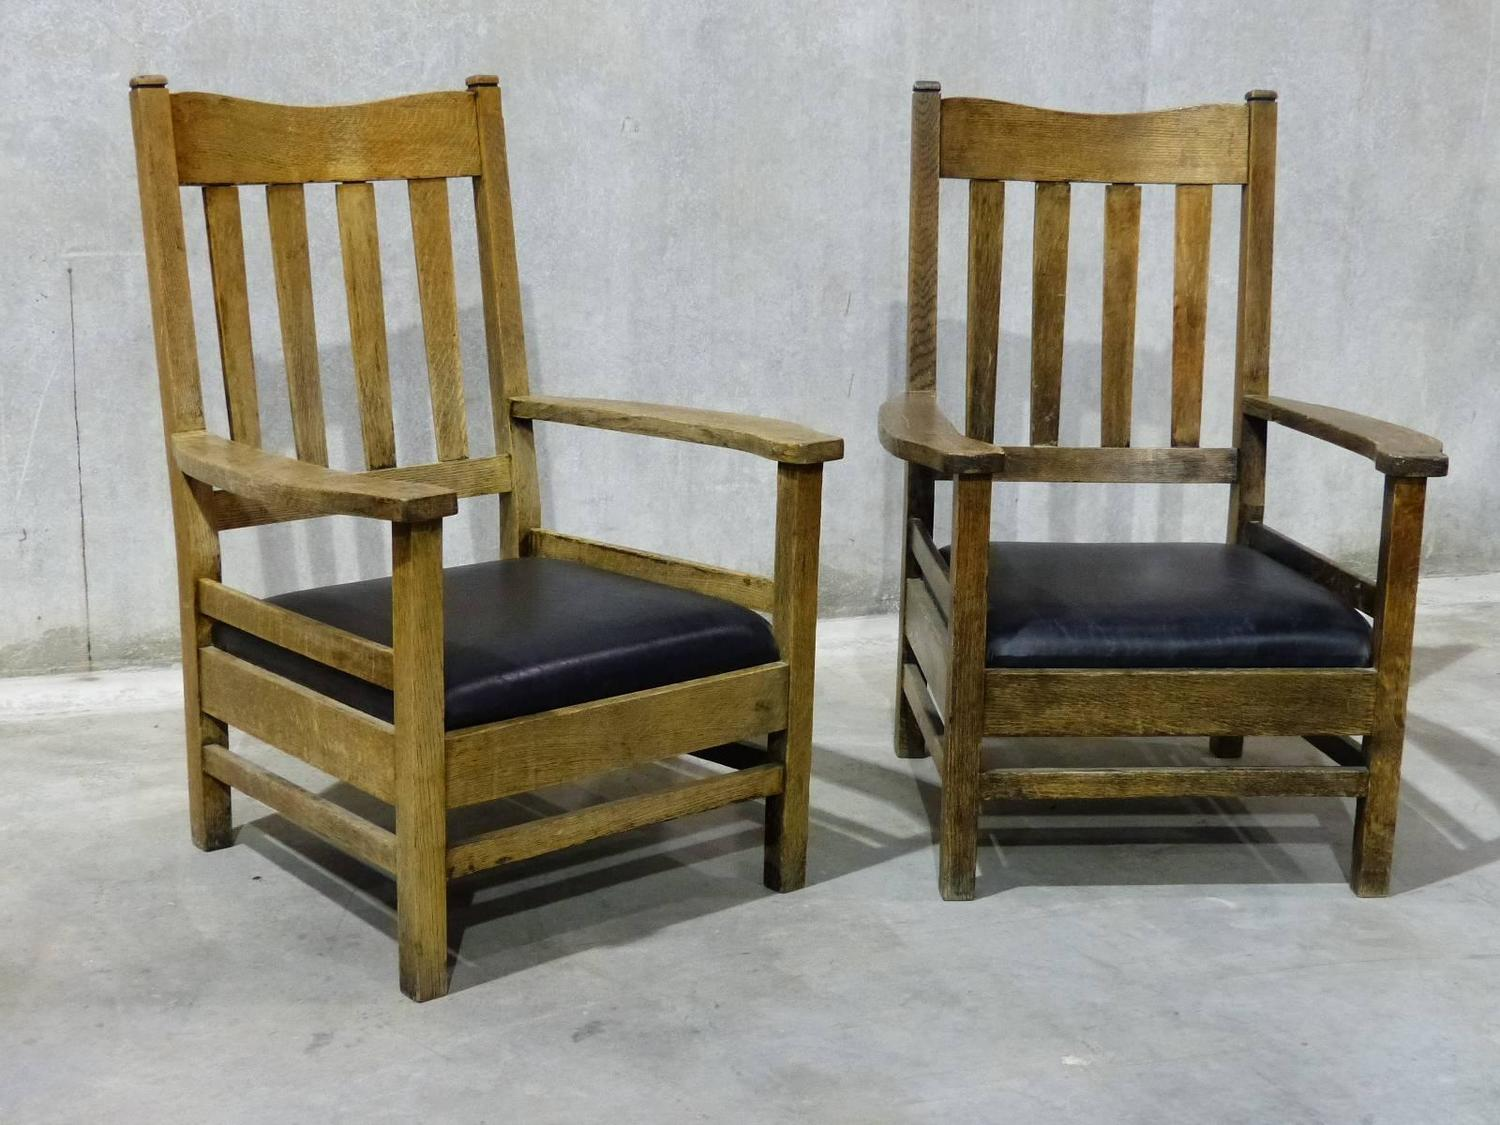 craftsman style chairs slip cover chair and ottoman 1920 large lodge lounge for sale at